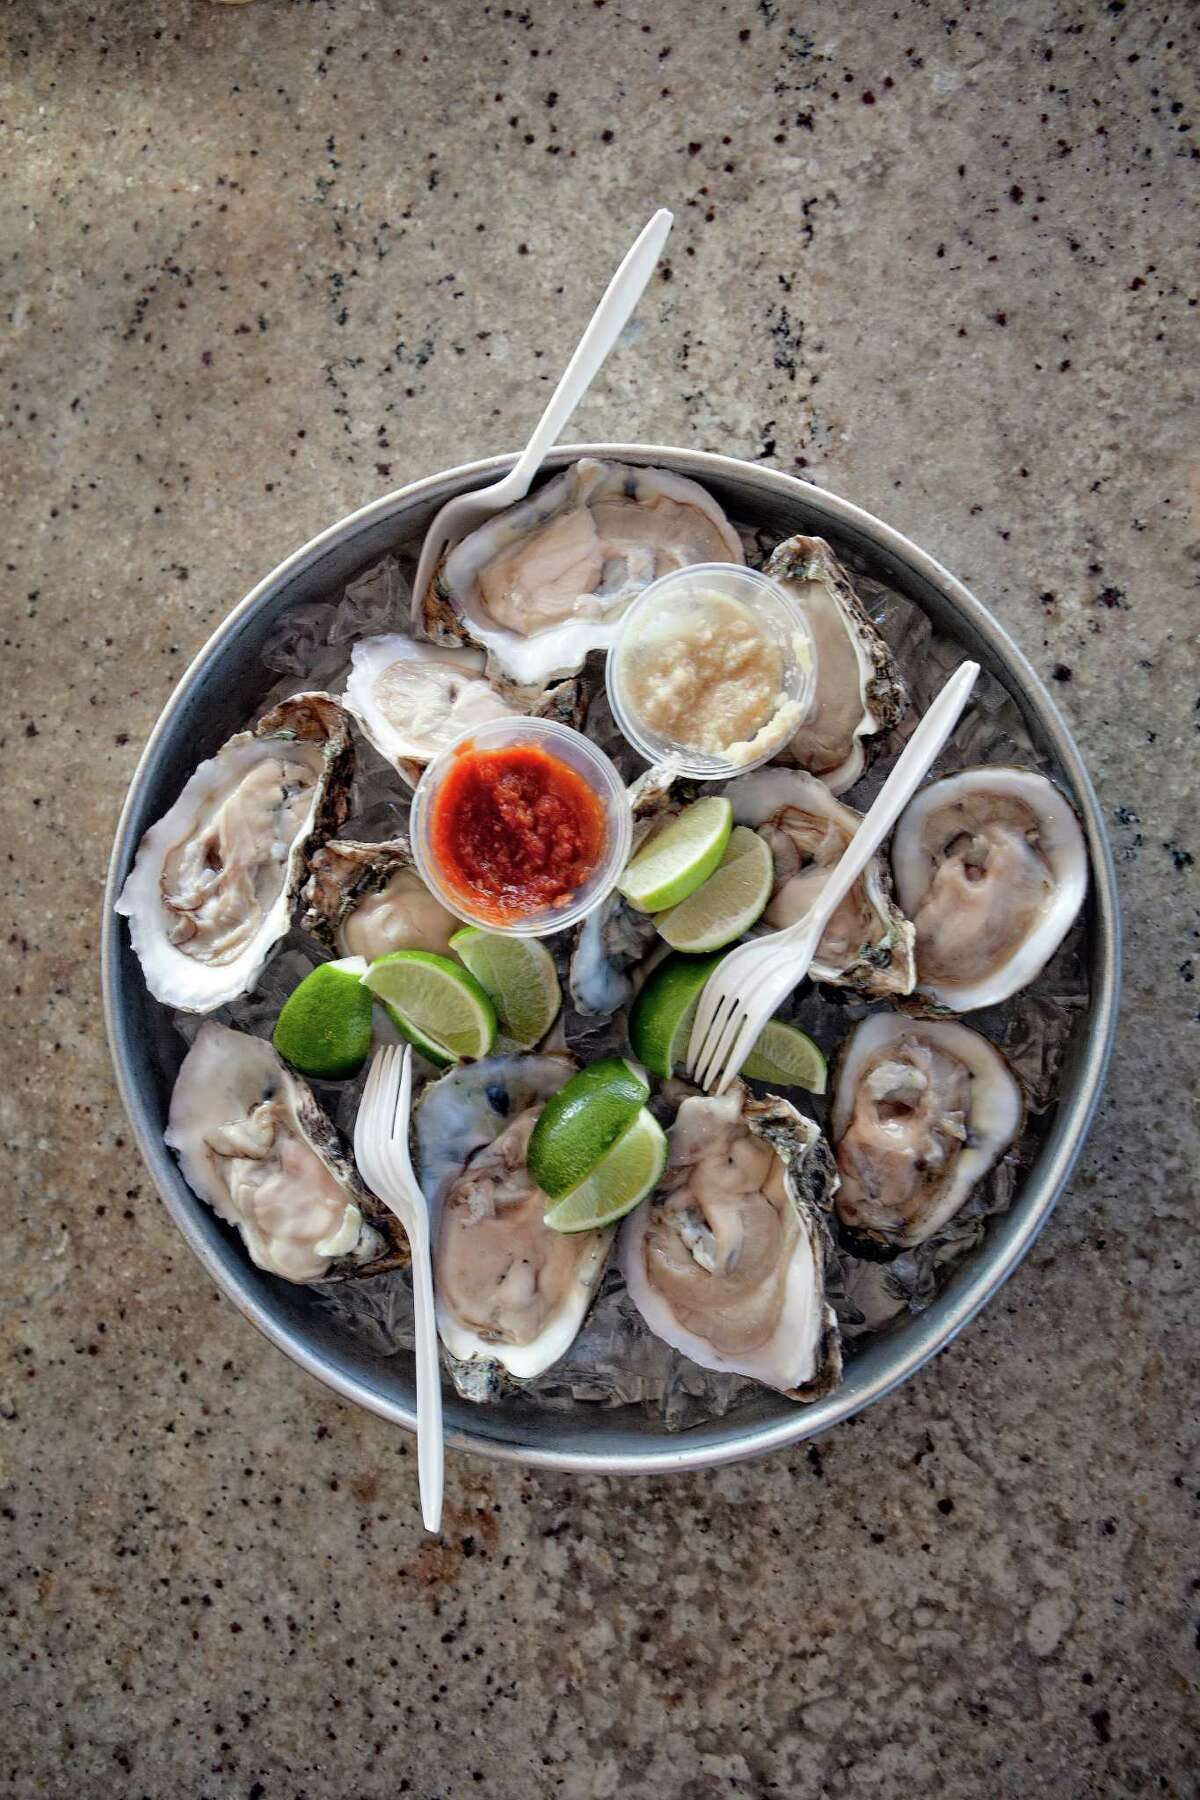 A tray of raw oysters at Crawfish & Noodles